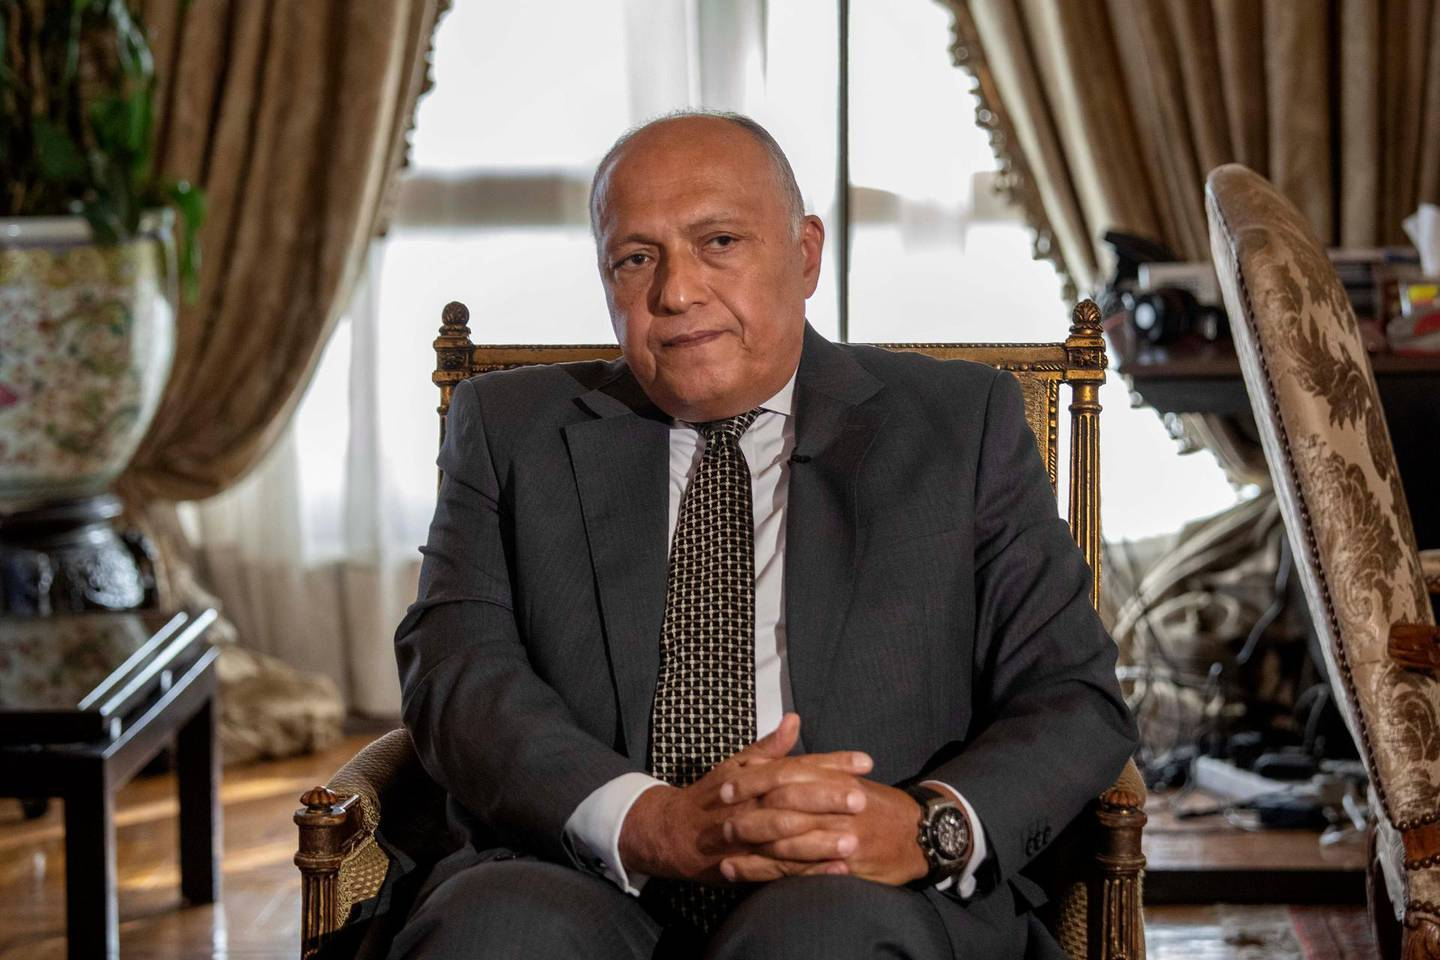 """Egyptian Foreign Minister Sameh Shukry listens during an interview with The Associated Press at his office, in Cairo, Egypt, Sunday, June 21, 2020. Egypt wants the United Nations Security Council to """"undertake its responsibilities"""" and prevent Ethiopia from starting to fill its massive, newly built hydroelectric dam on the Nile River next month amid a breakdown in negotiations, Shukry told The Associated Press on Sunday, accusing Ethiopian officials of stoking antagonism between the countries. (AP Photo/Nariman El-Mofty)"""